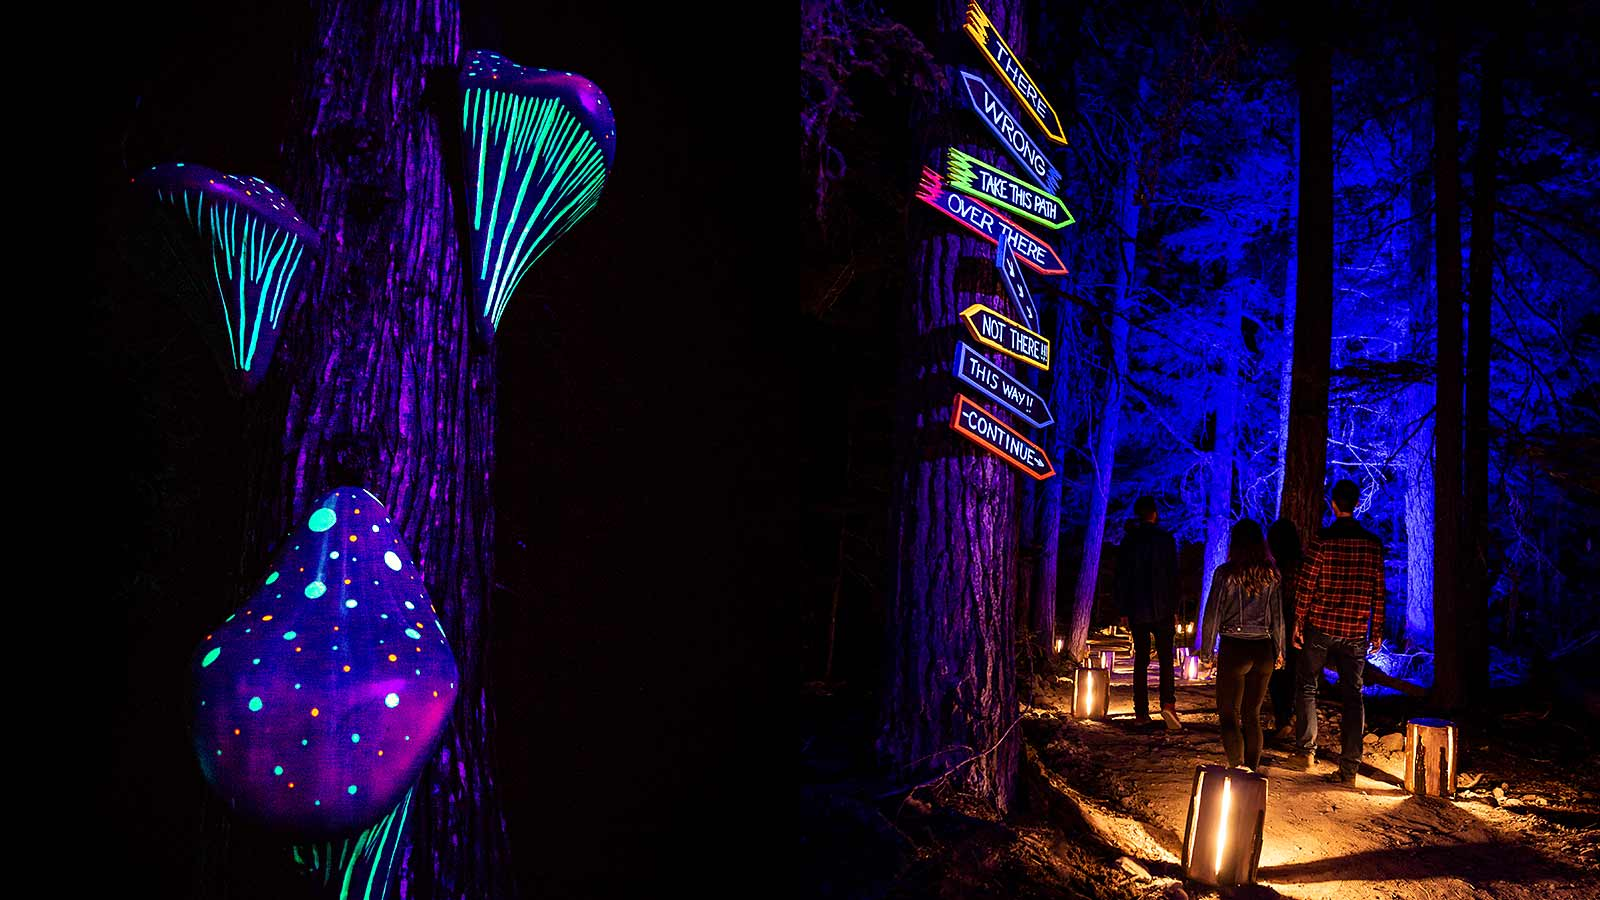 Neon lights and signs at Vallea Lumina Whistler